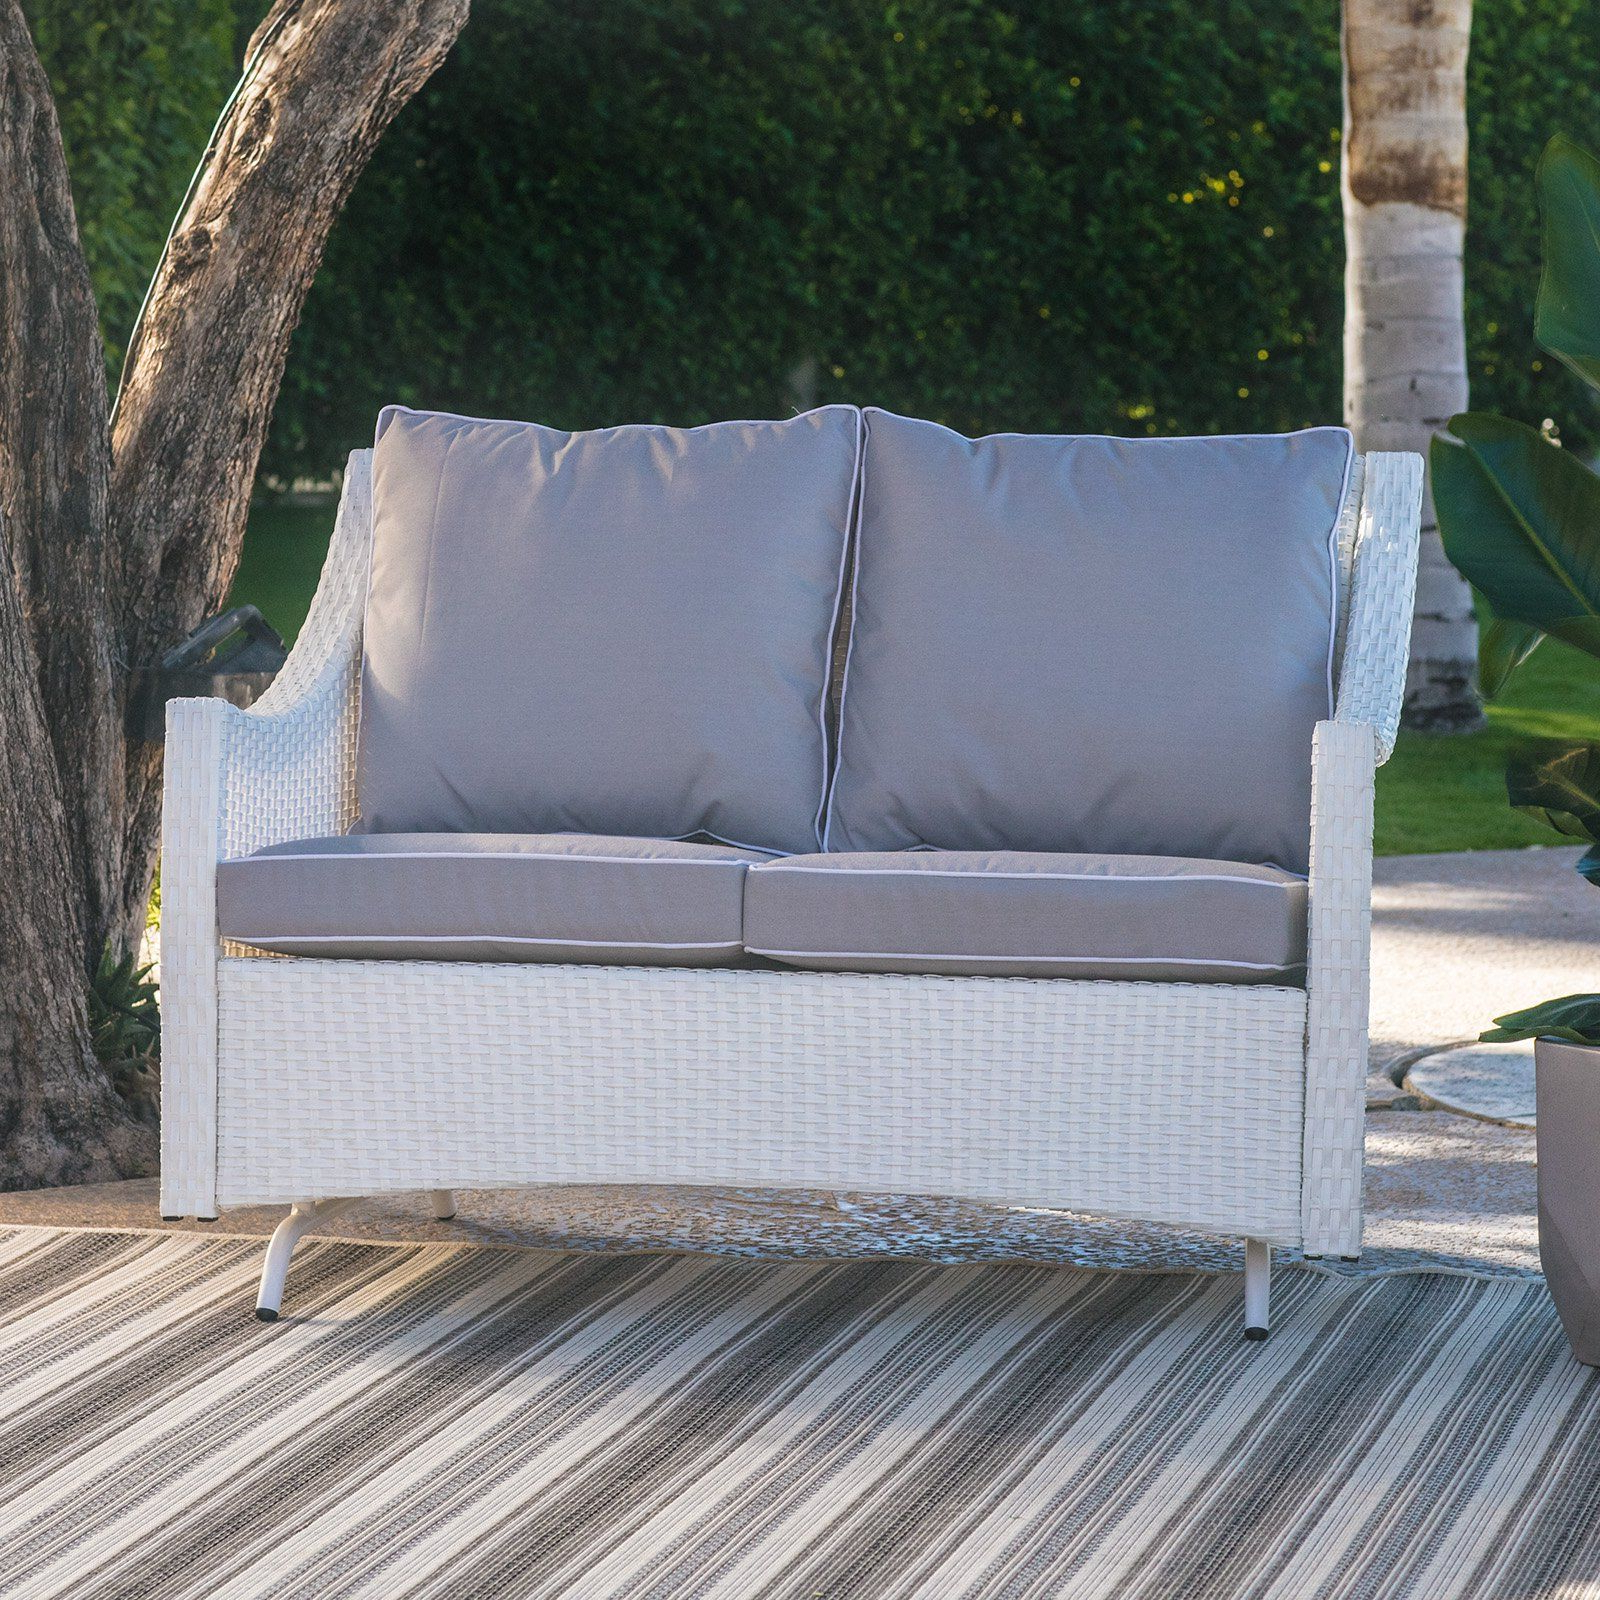 Well Known Outdoor Loveseat Gliders With Cushion For Belham Living Lindau All Weather Wicker Patio Loveseat (View 9 of 30)